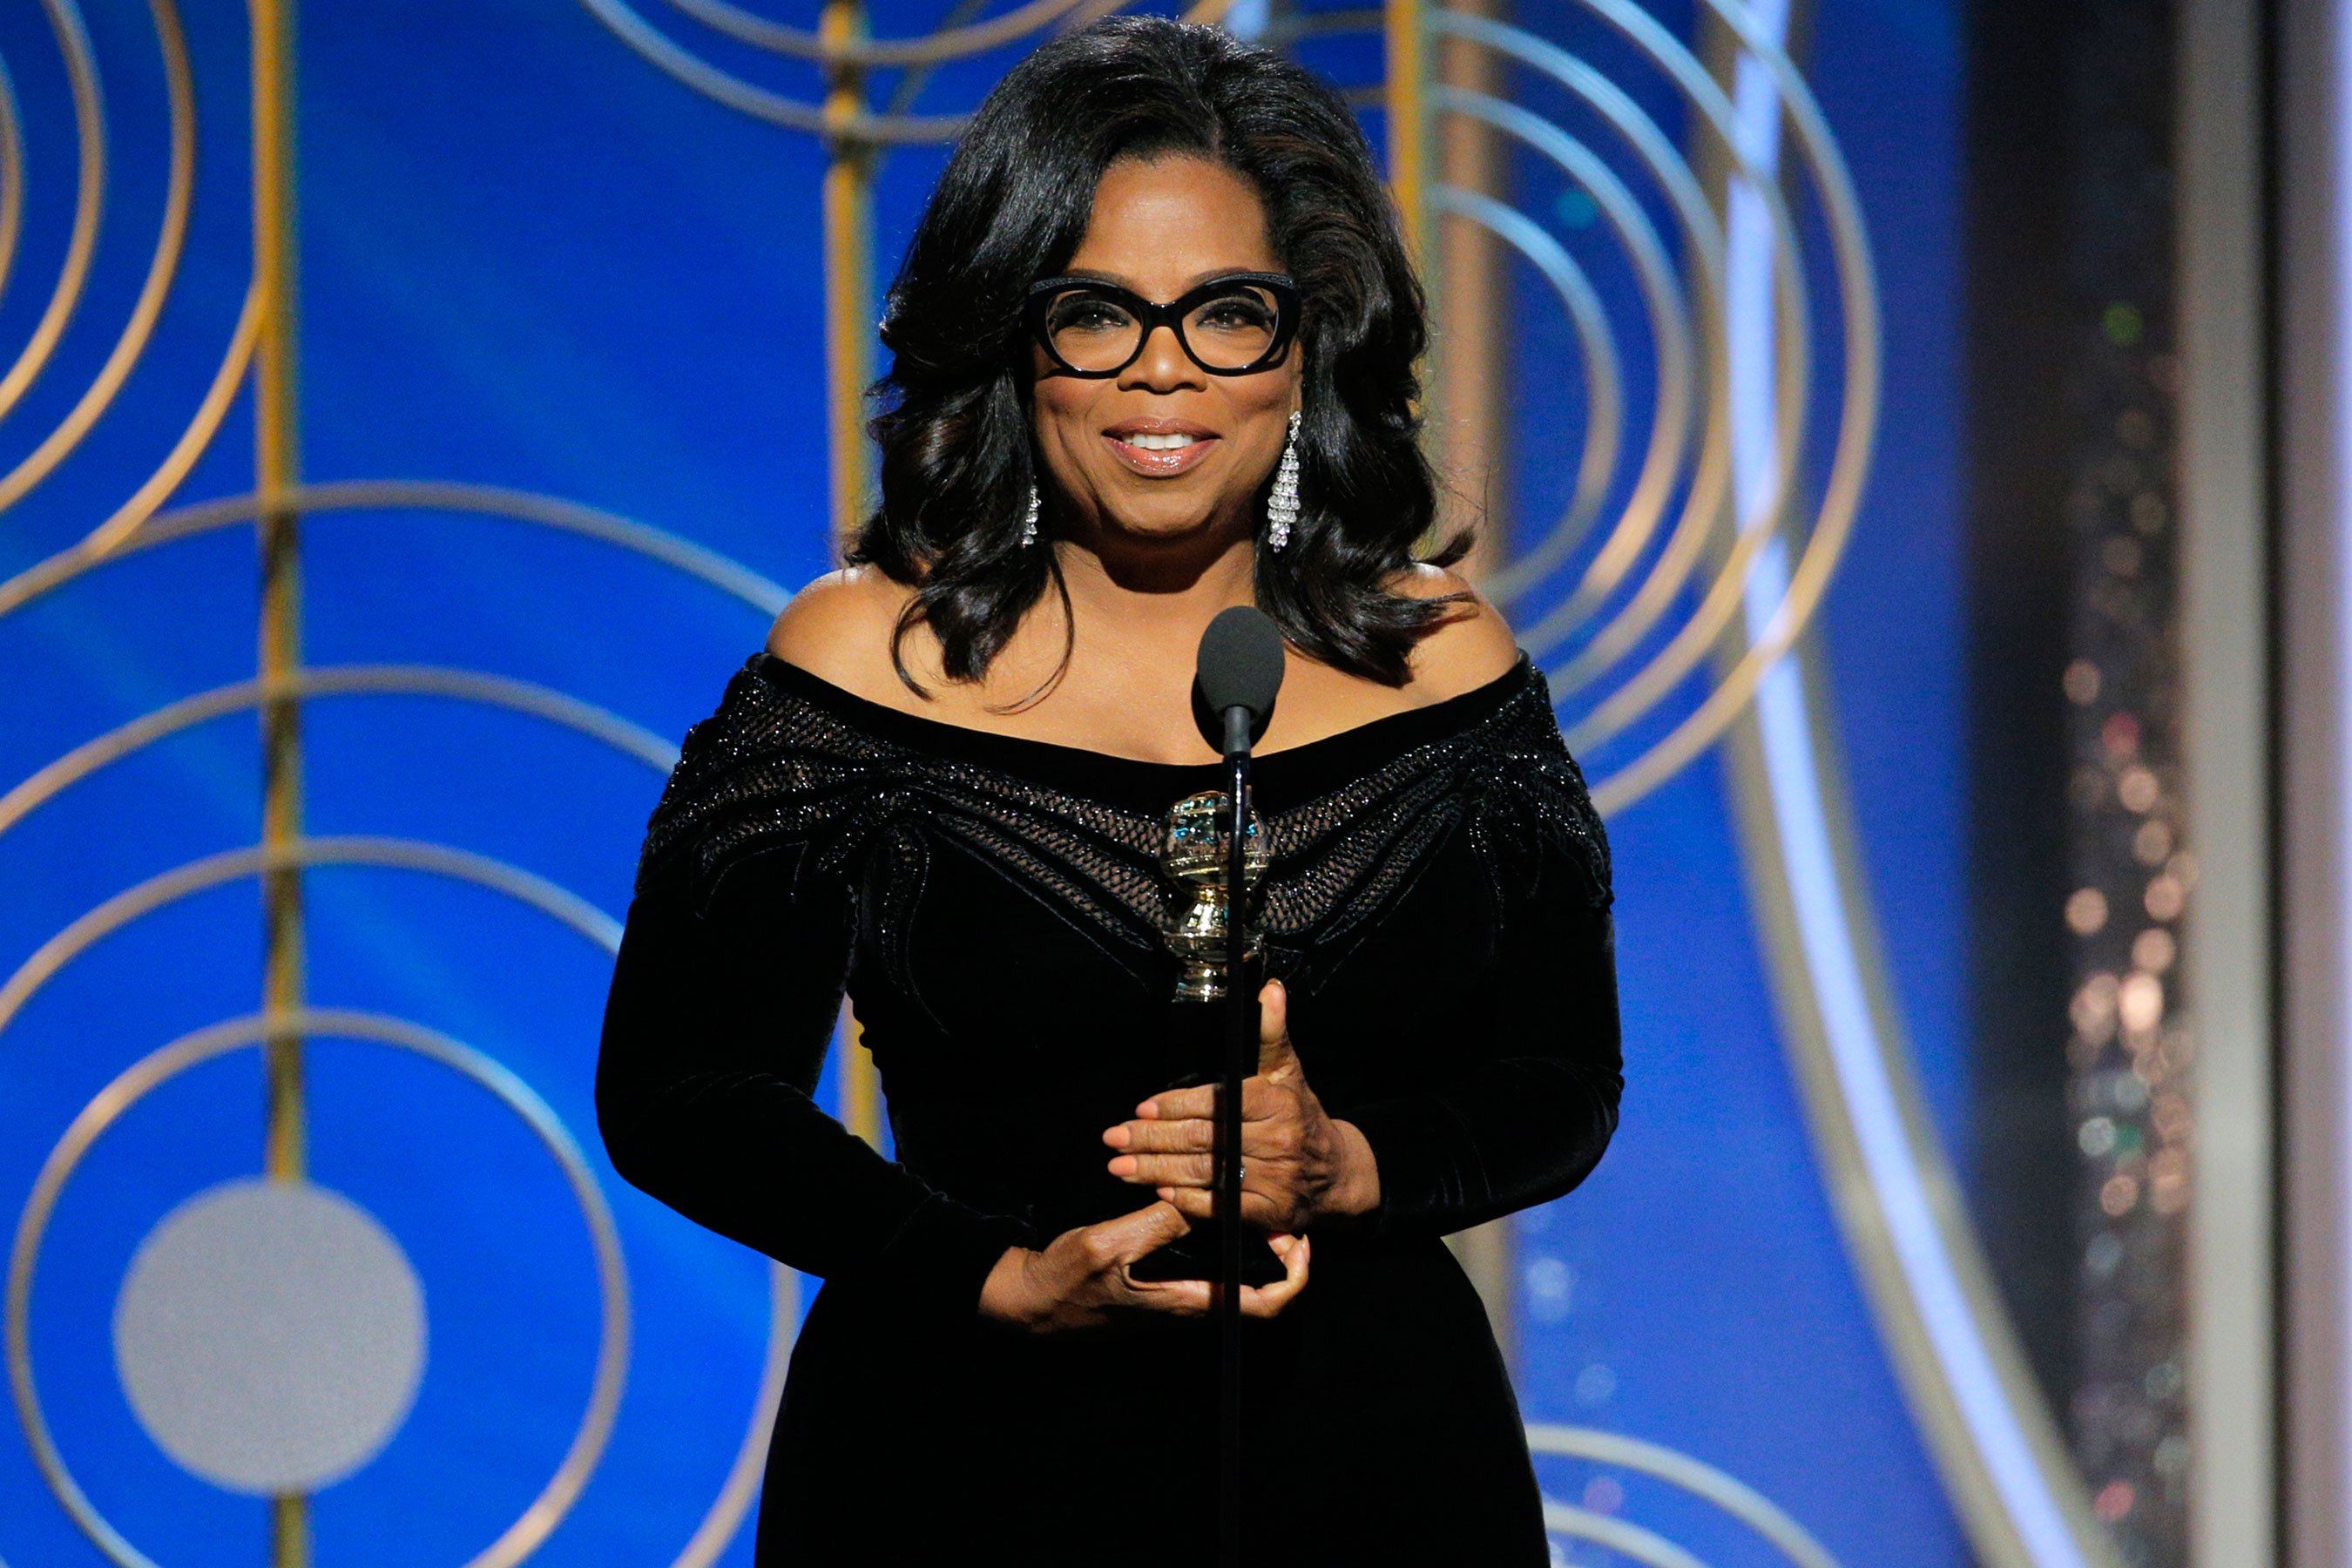 Oprah Winfrey Golden Globes speech now on Spotify